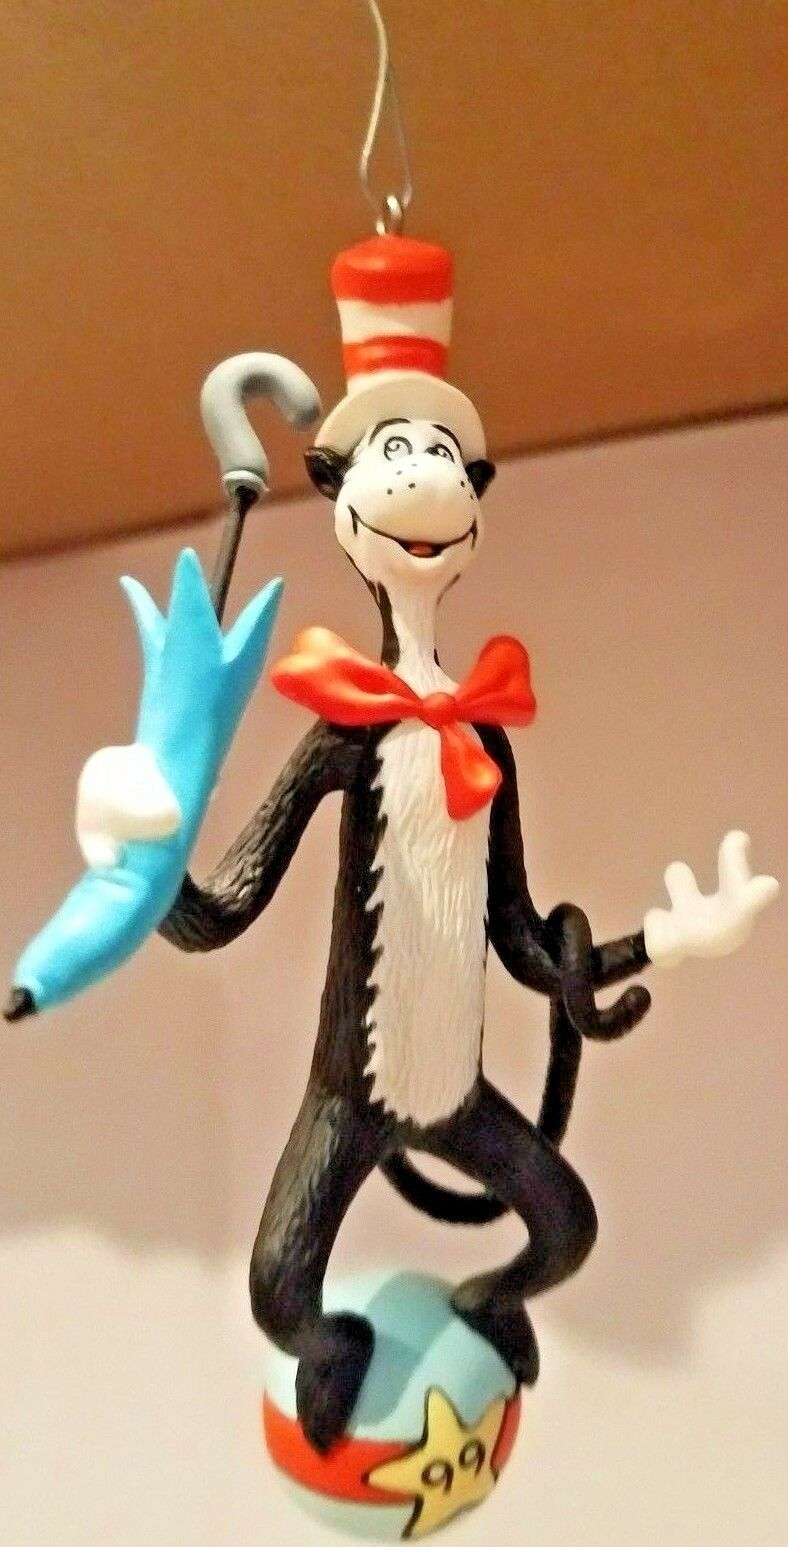 Hallmark Keepsake Ornaments The Cat in the Hat 1999 Collector's Series